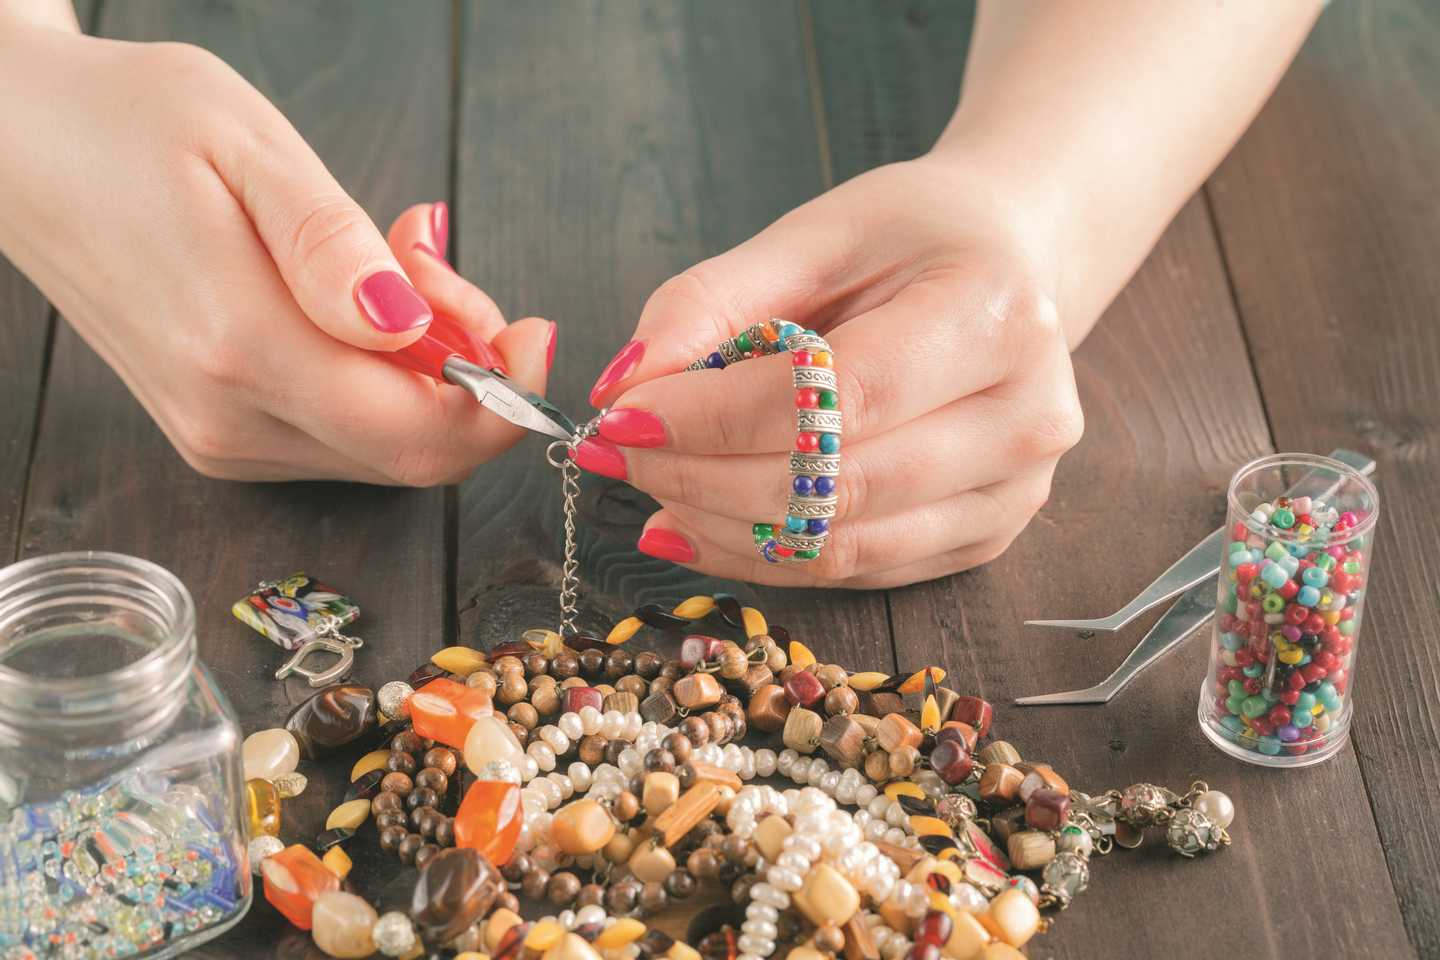 A lady with a pile of beads in front of her whilst holding a bracelet she is making